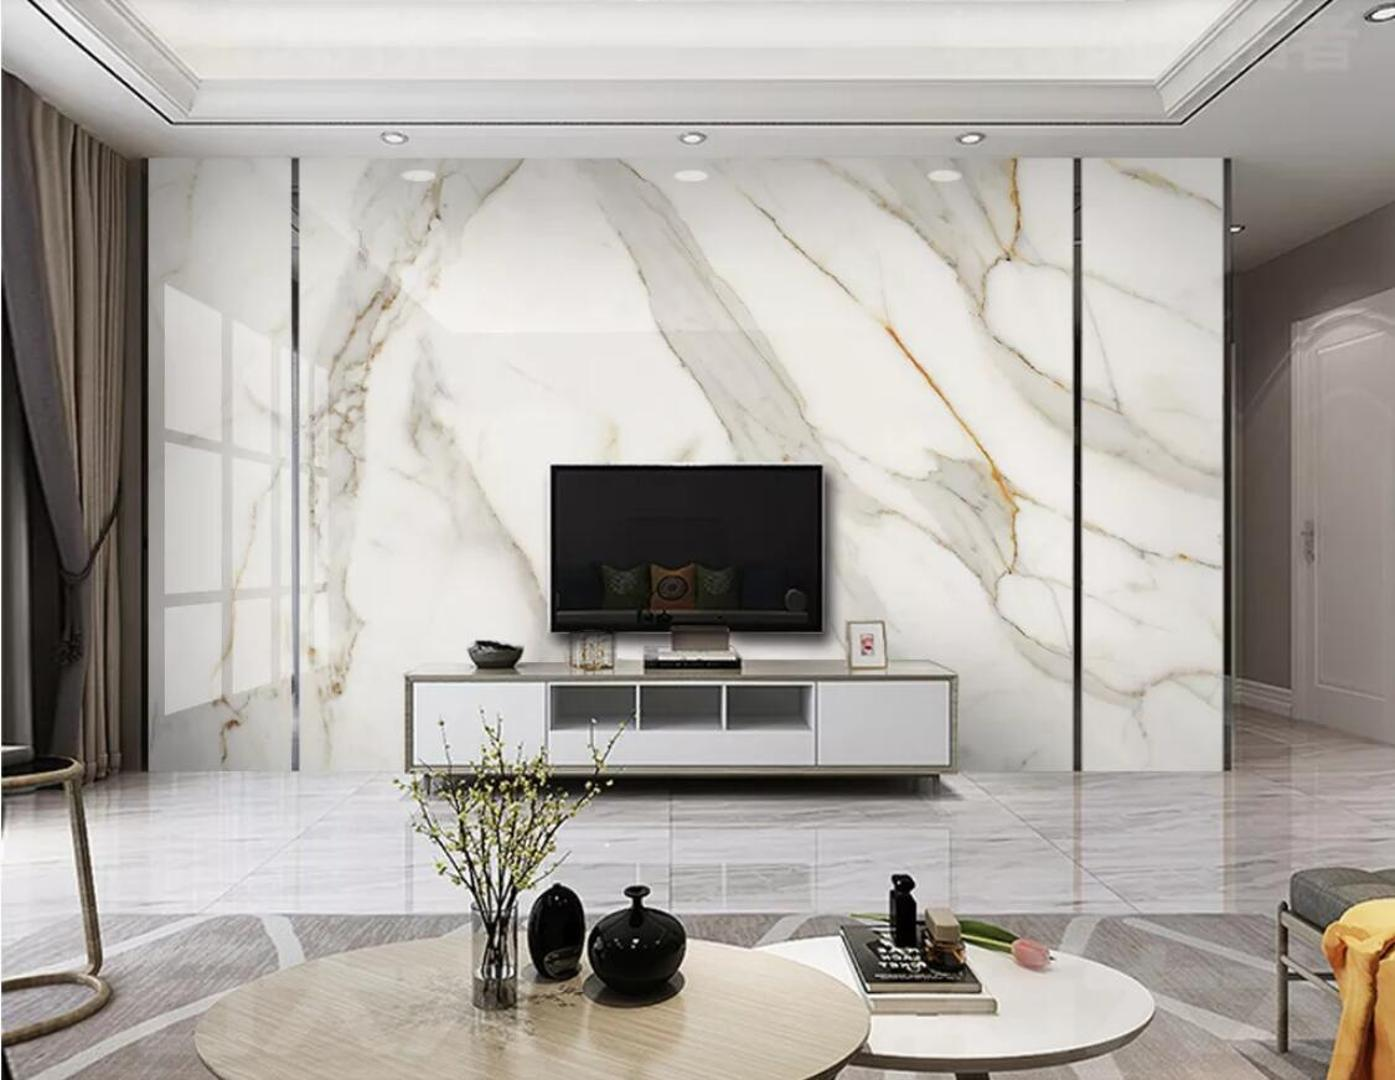 Polyester Abstract Marble Texture Wall Photography Background 8x6ft Creative Plain Wall Backdrops Children Adults Pets Product Photo Studio Props House Decoration Wallpaper